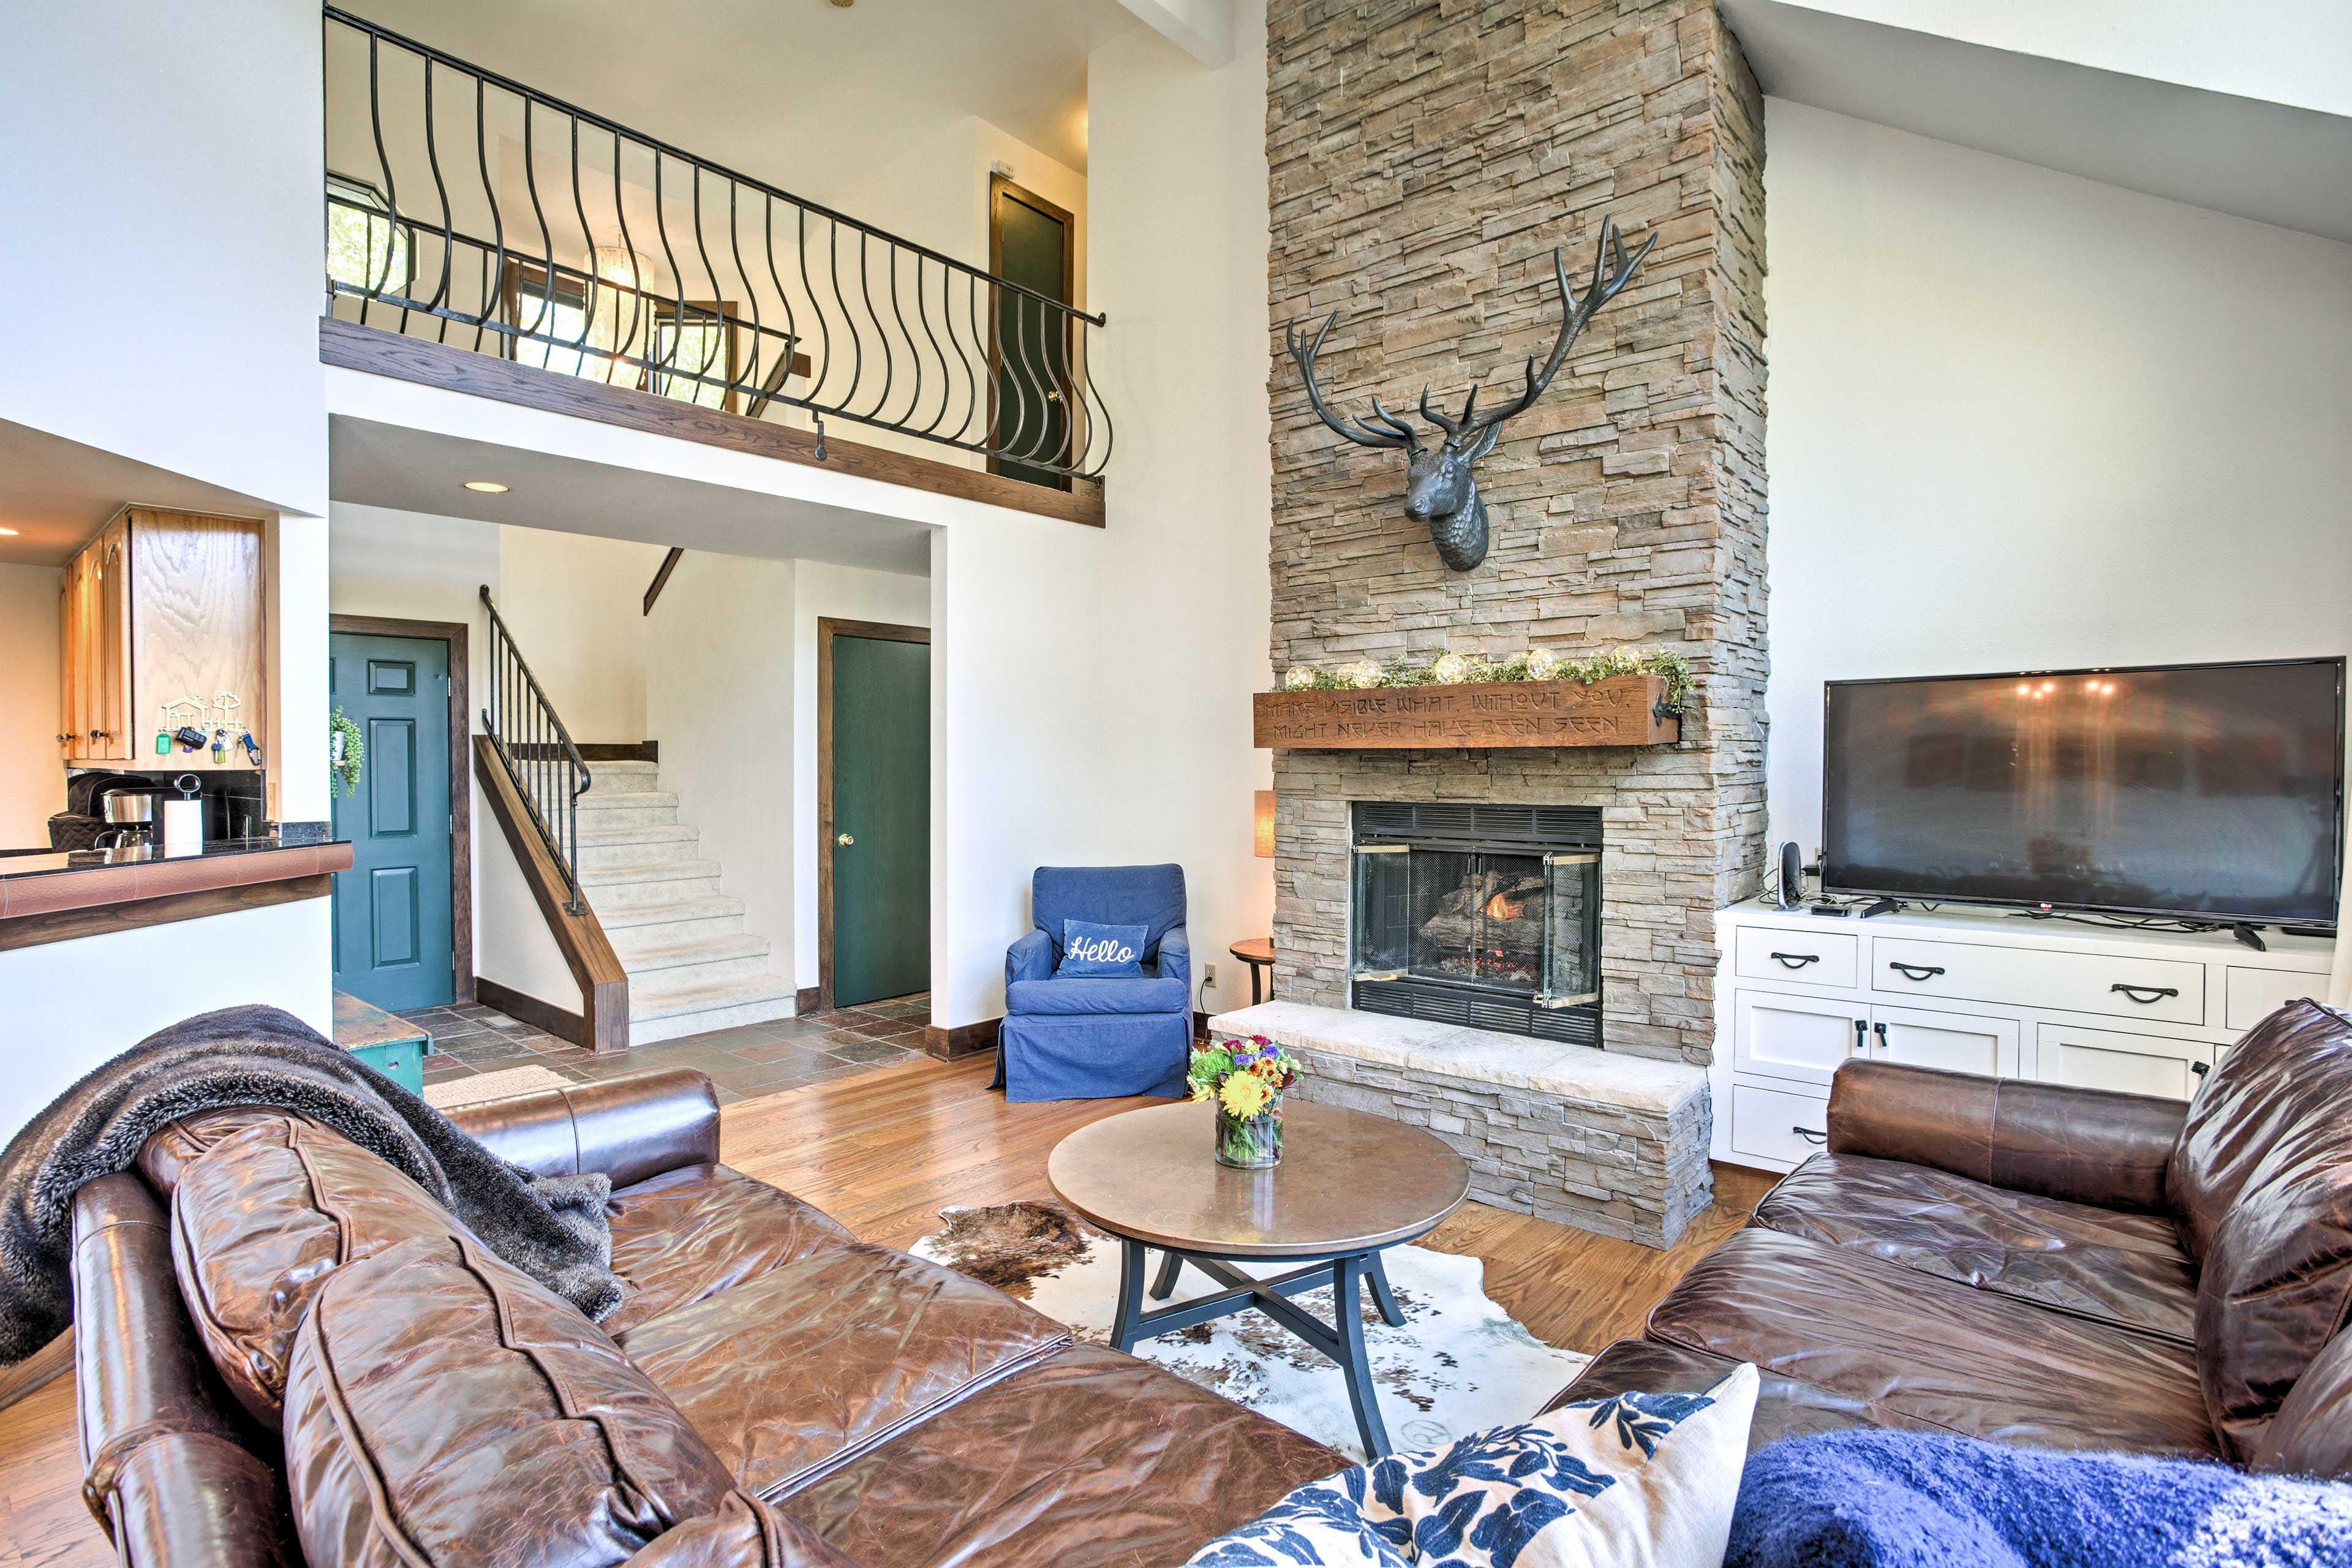 Curl up on the large sectional and cozy up by the stone fireplace in the living area.